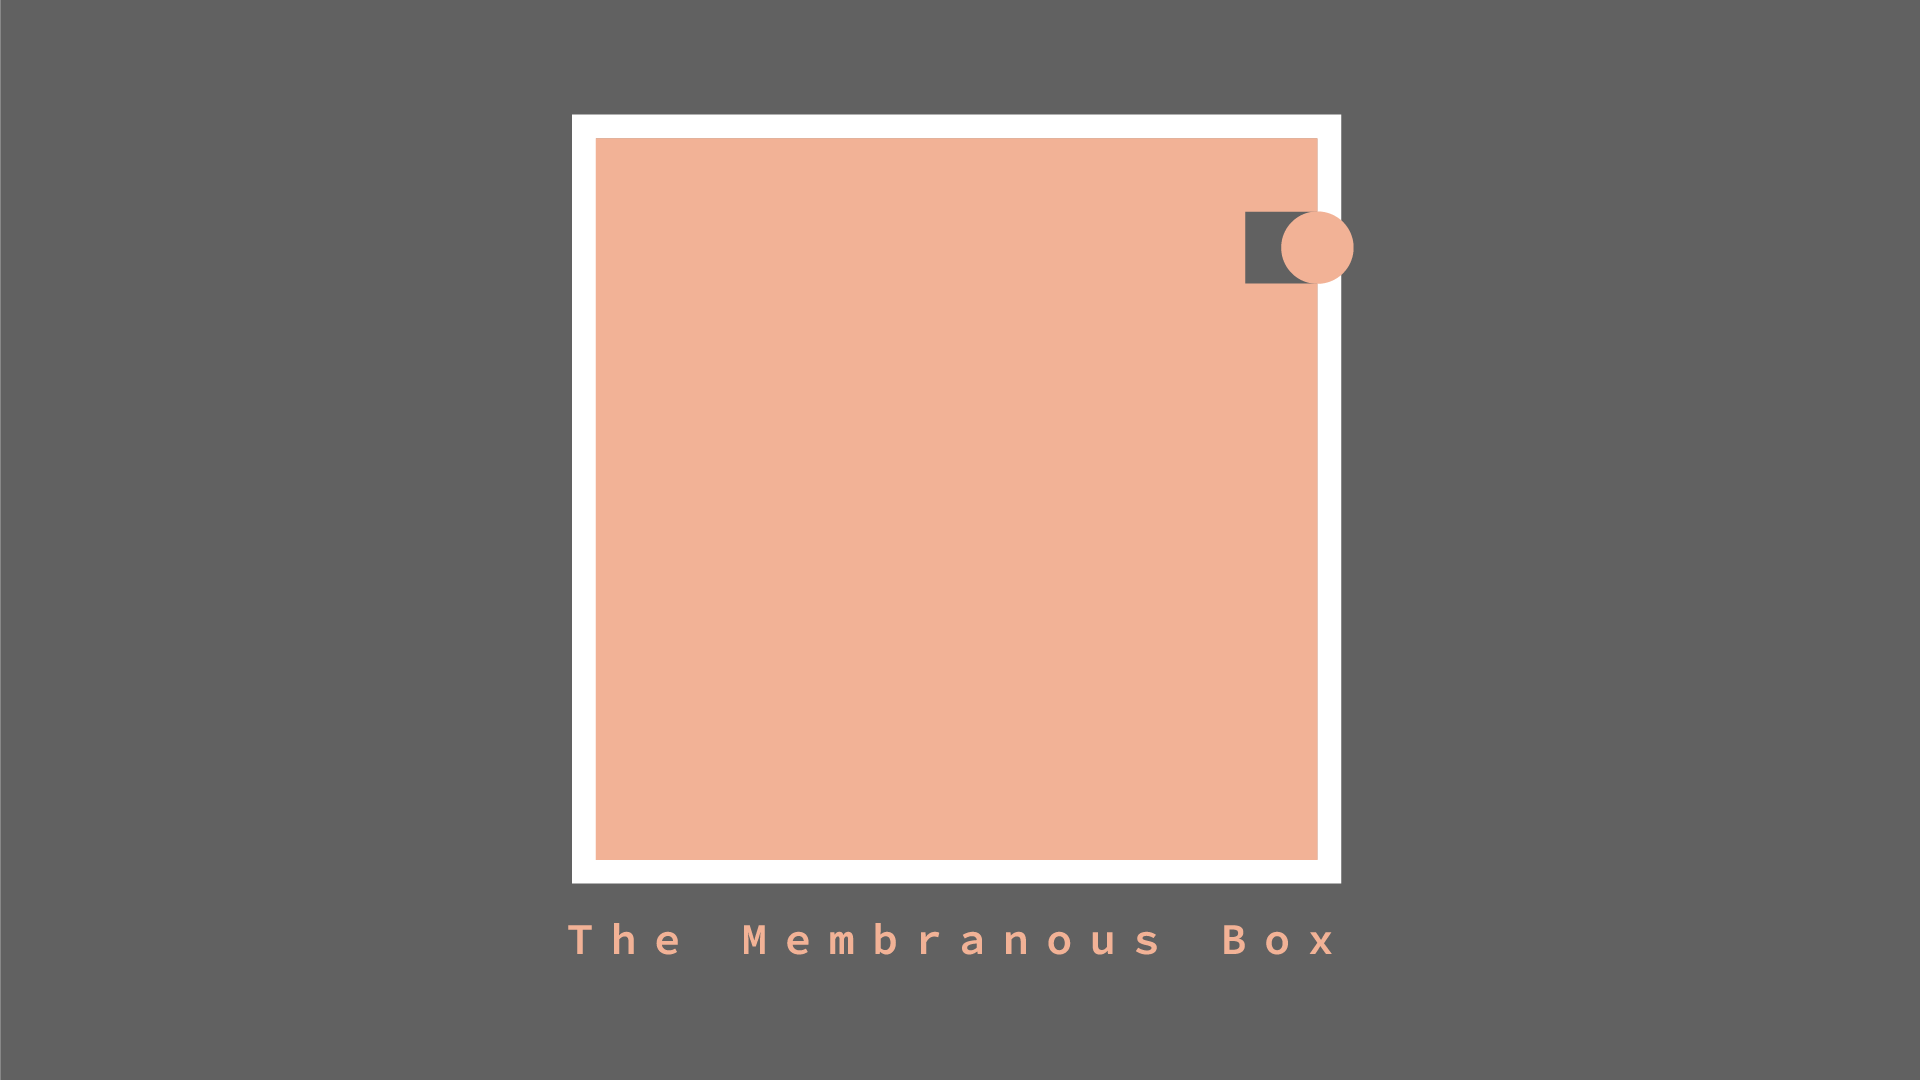 Key visual for The Membranous Box